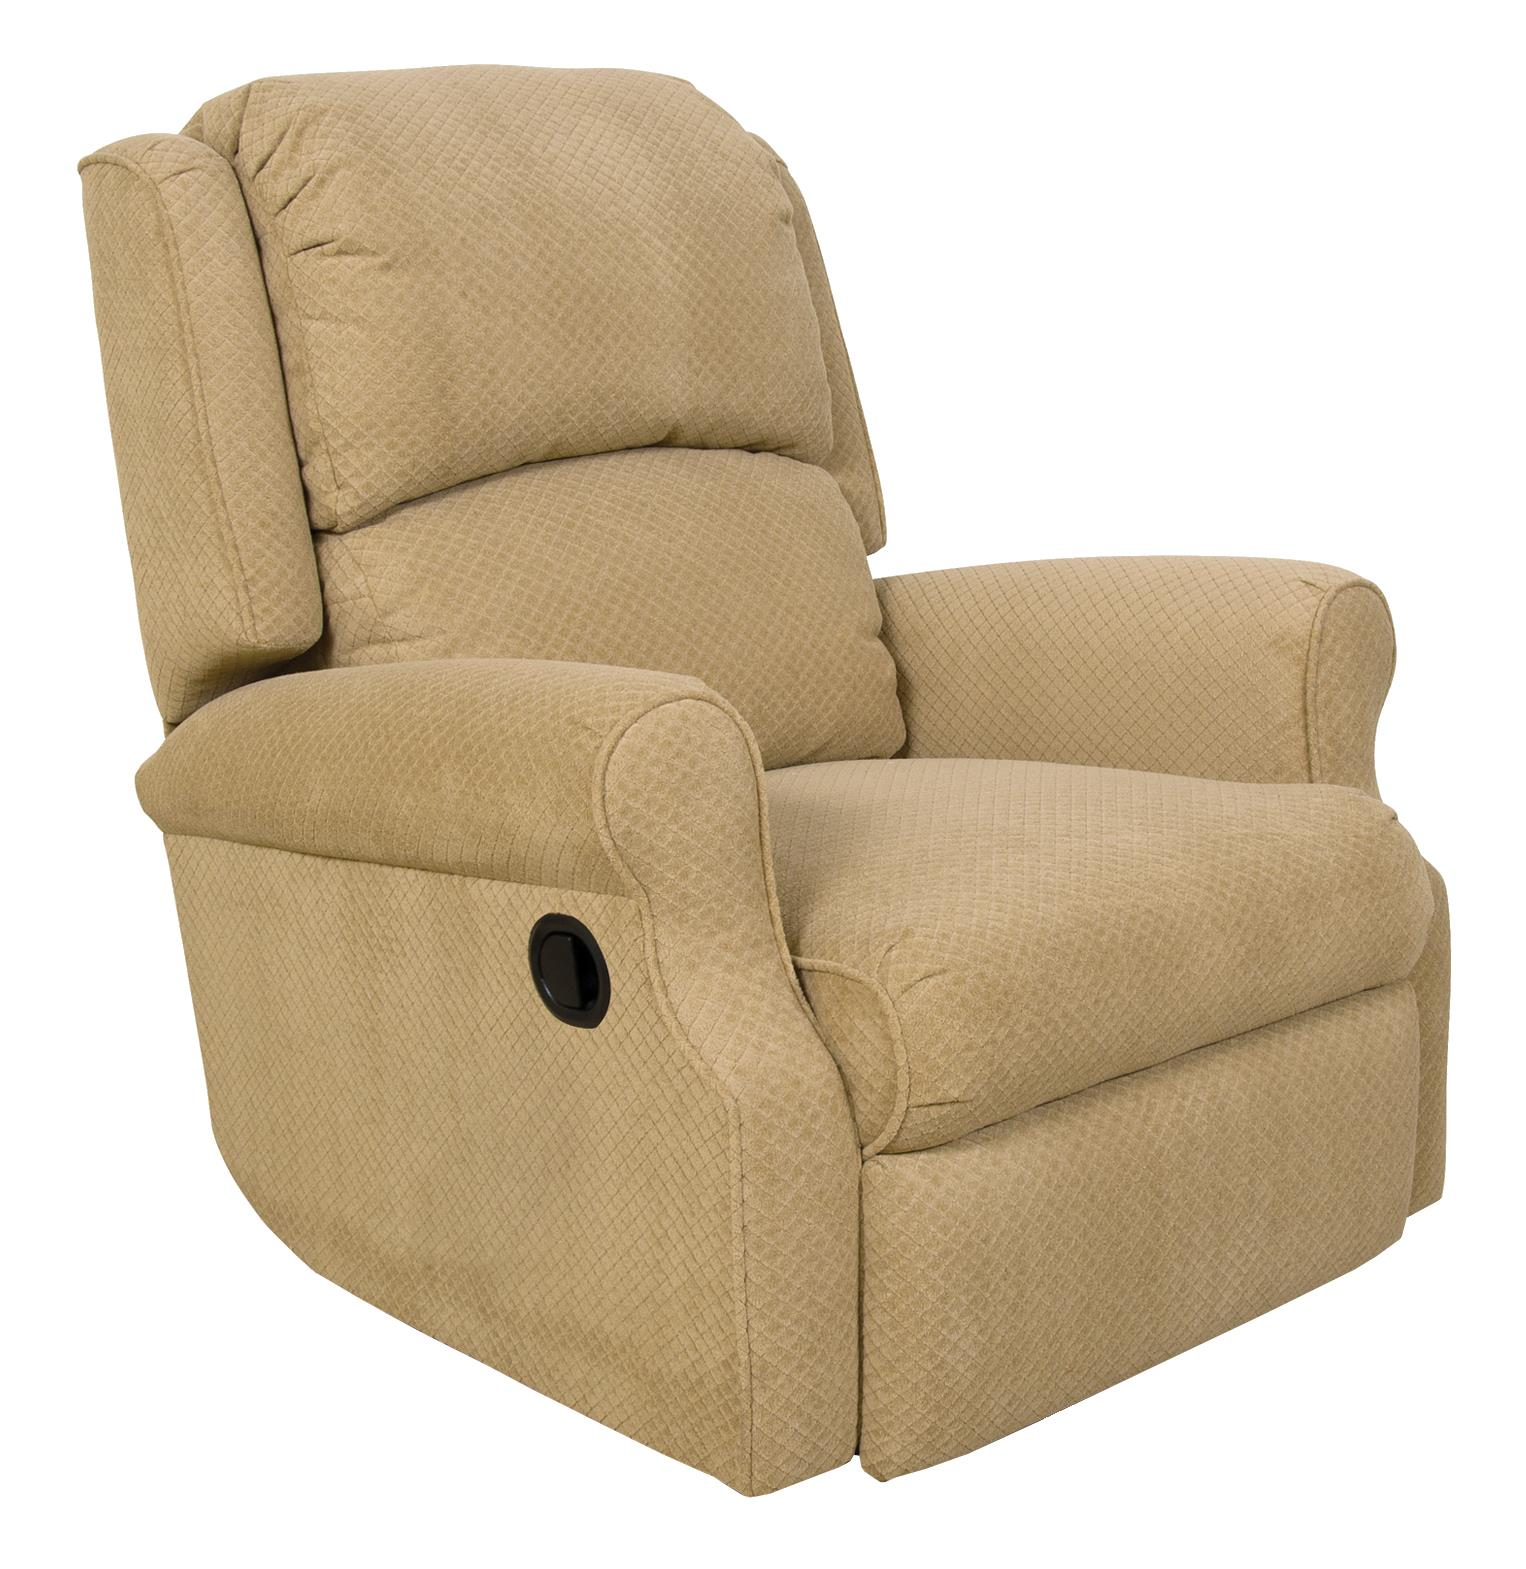 Marybeth Swivel Gliding Recliner by England at A1 Furniture & Mattress